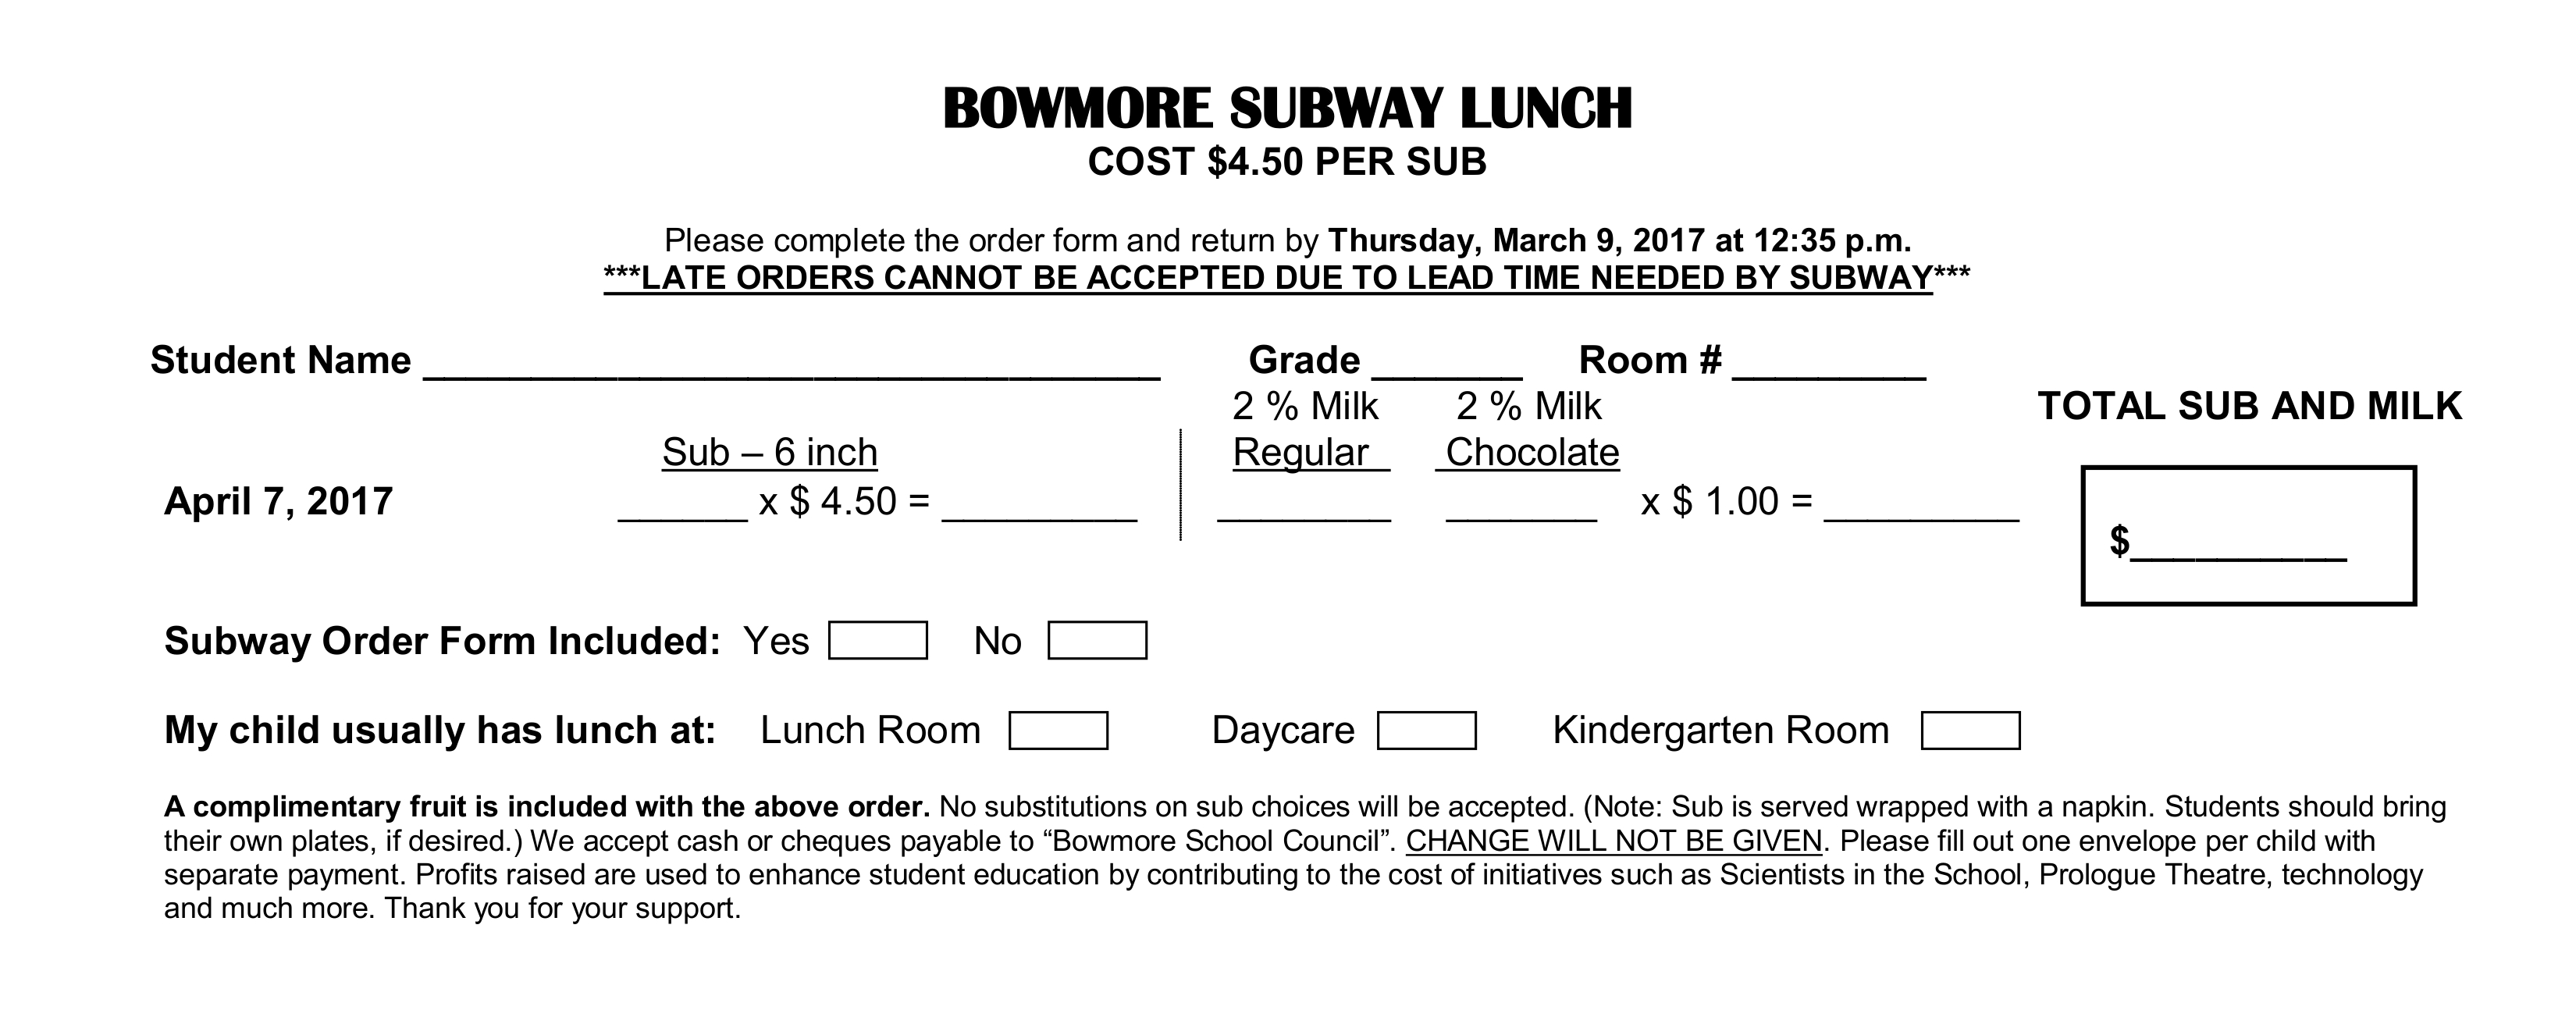 Smashing Inmate Please Fill Out Both Envelope Order Form Sent To Subway Lunch Order Forms Due Thursday Bowmore School Council How To Fill Out Envelope Canada Post How To Fill Out Envelope photos How To Fill Out Envelope